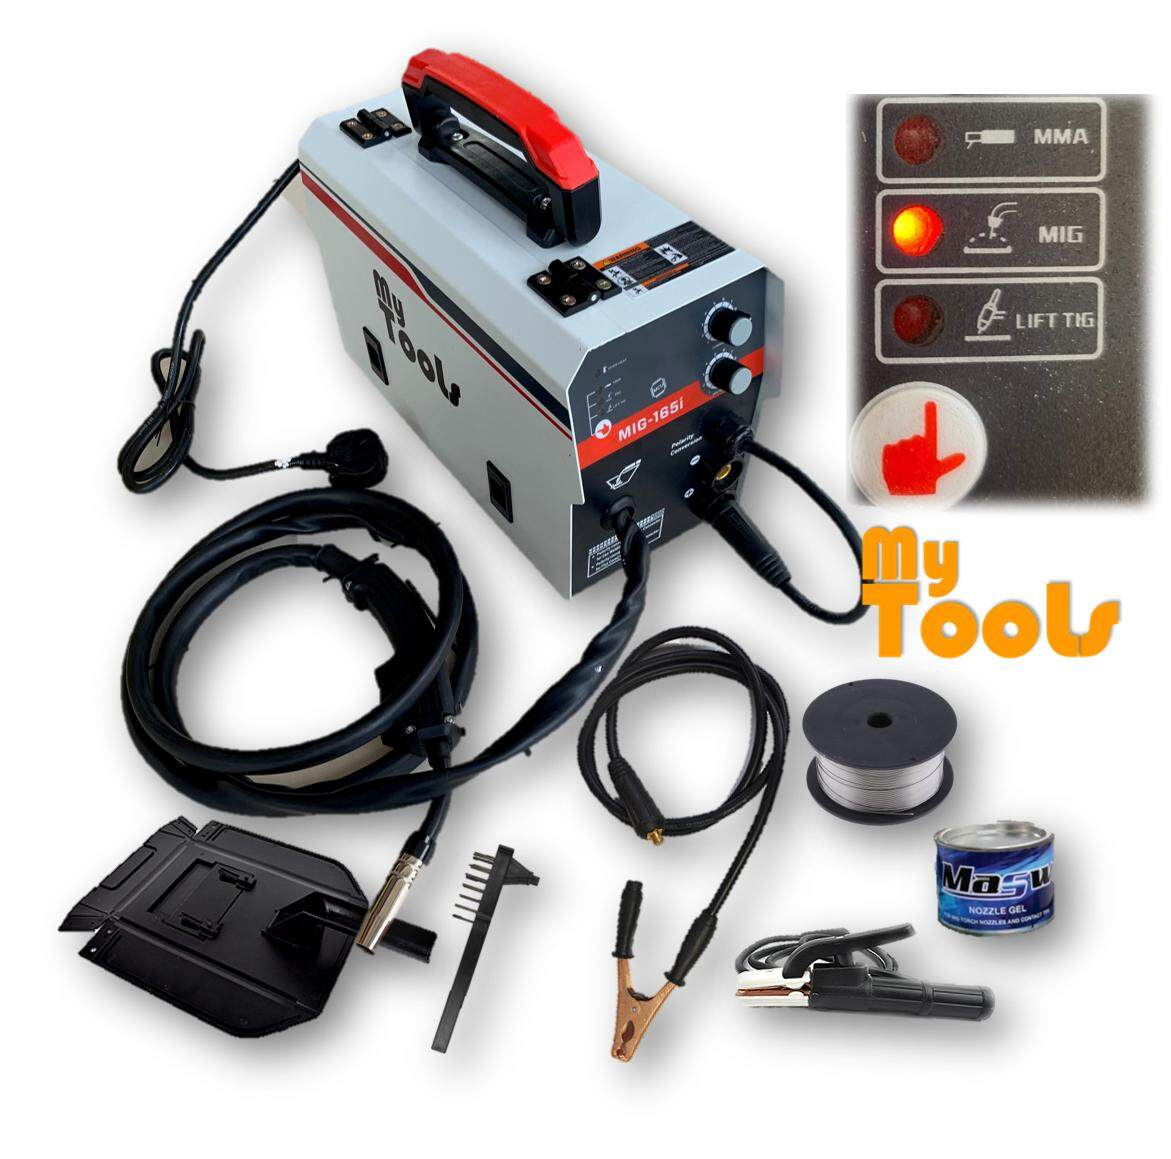 Mytools MIG165 Gas-Less MIG , MIG , TIG, ARC, Aluminium, Stainless Steel 6 In 1 Welding Machine Set (Made In Malaysia)